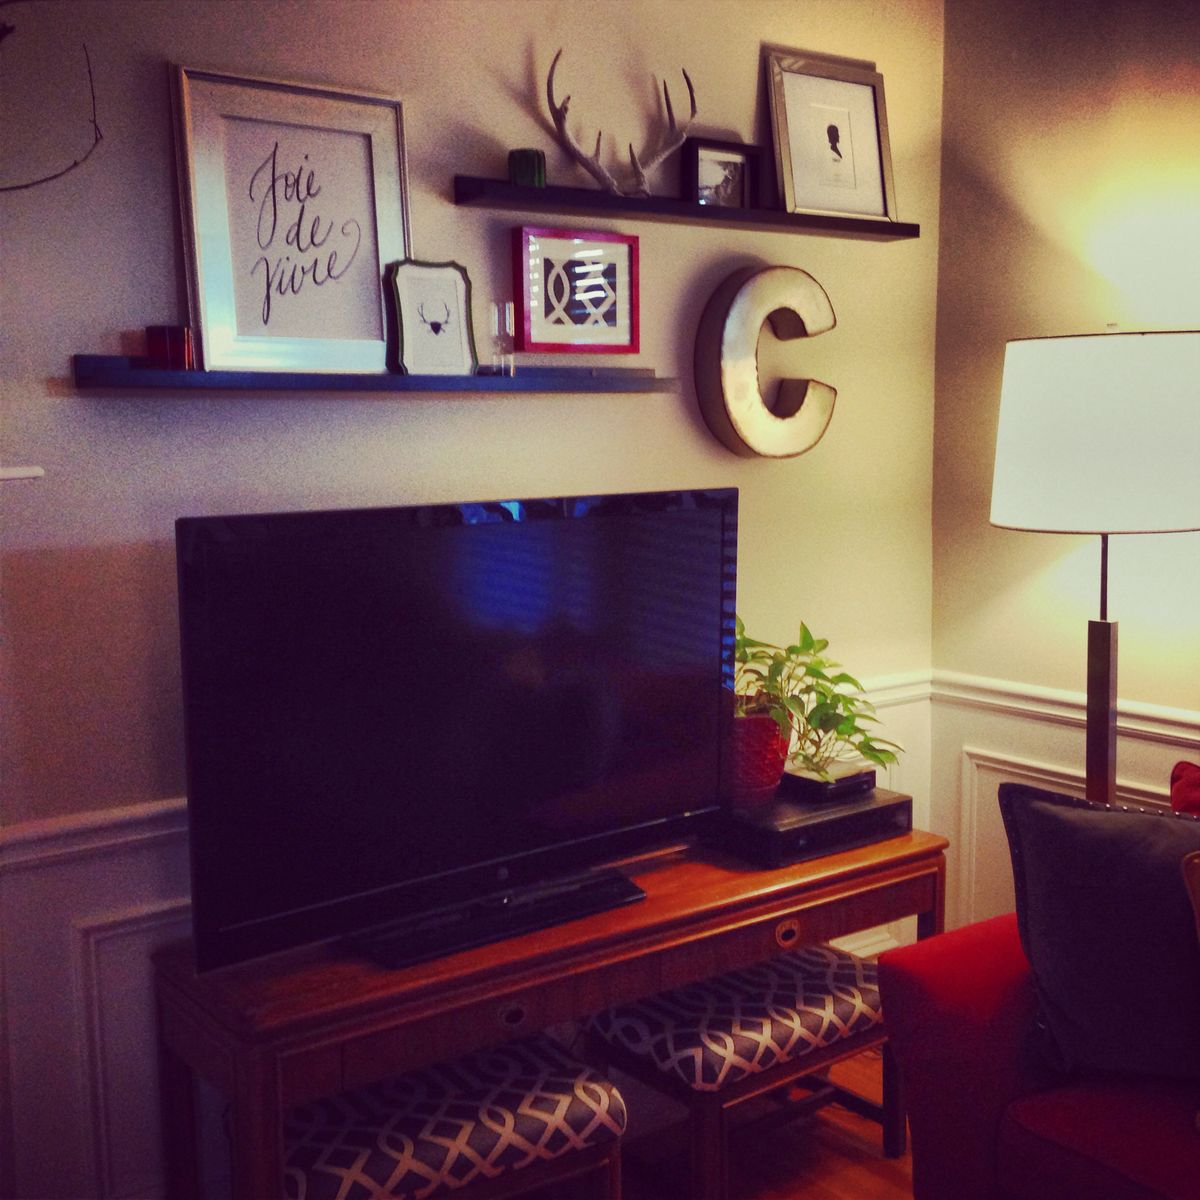 Hanging Art Above Tv Above Tv Decor On Pinterest Over Tv Decor Shelf Above